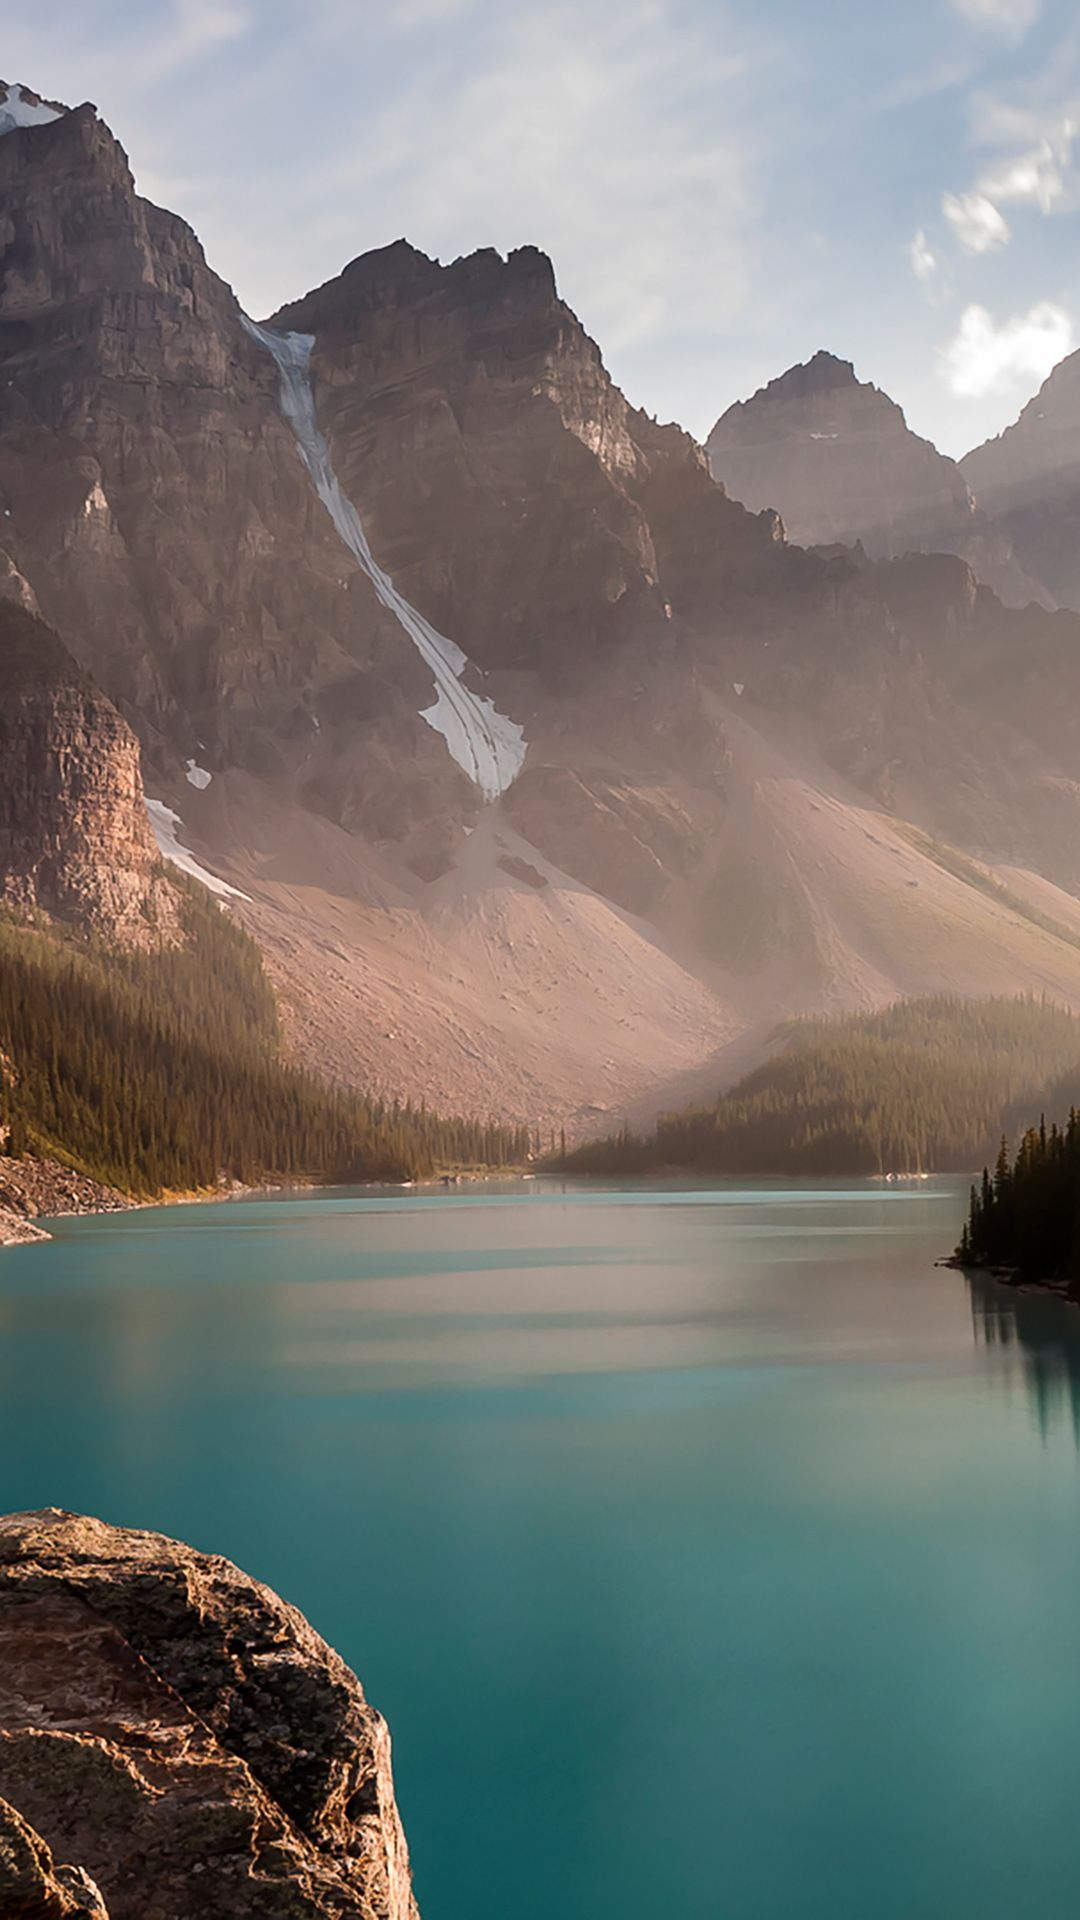 Lake In The Mountains Wallpaper